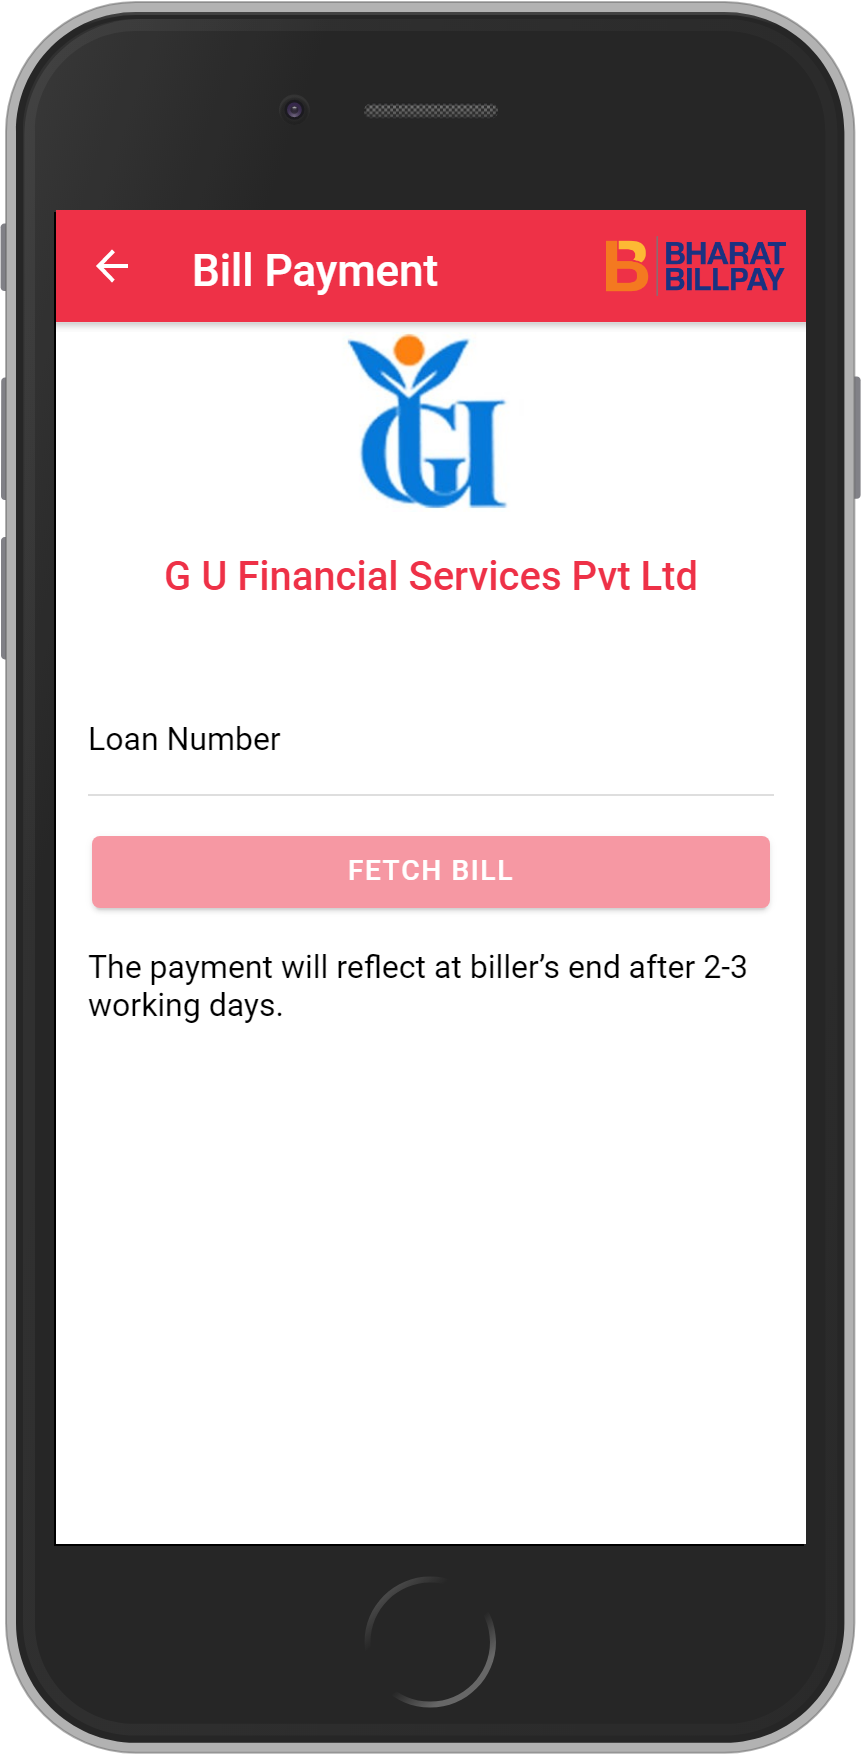 Get UNLIMITED <b>0.1%</b> CASHBACK on G U Financial Services Pvt Ltd Loan Payment.